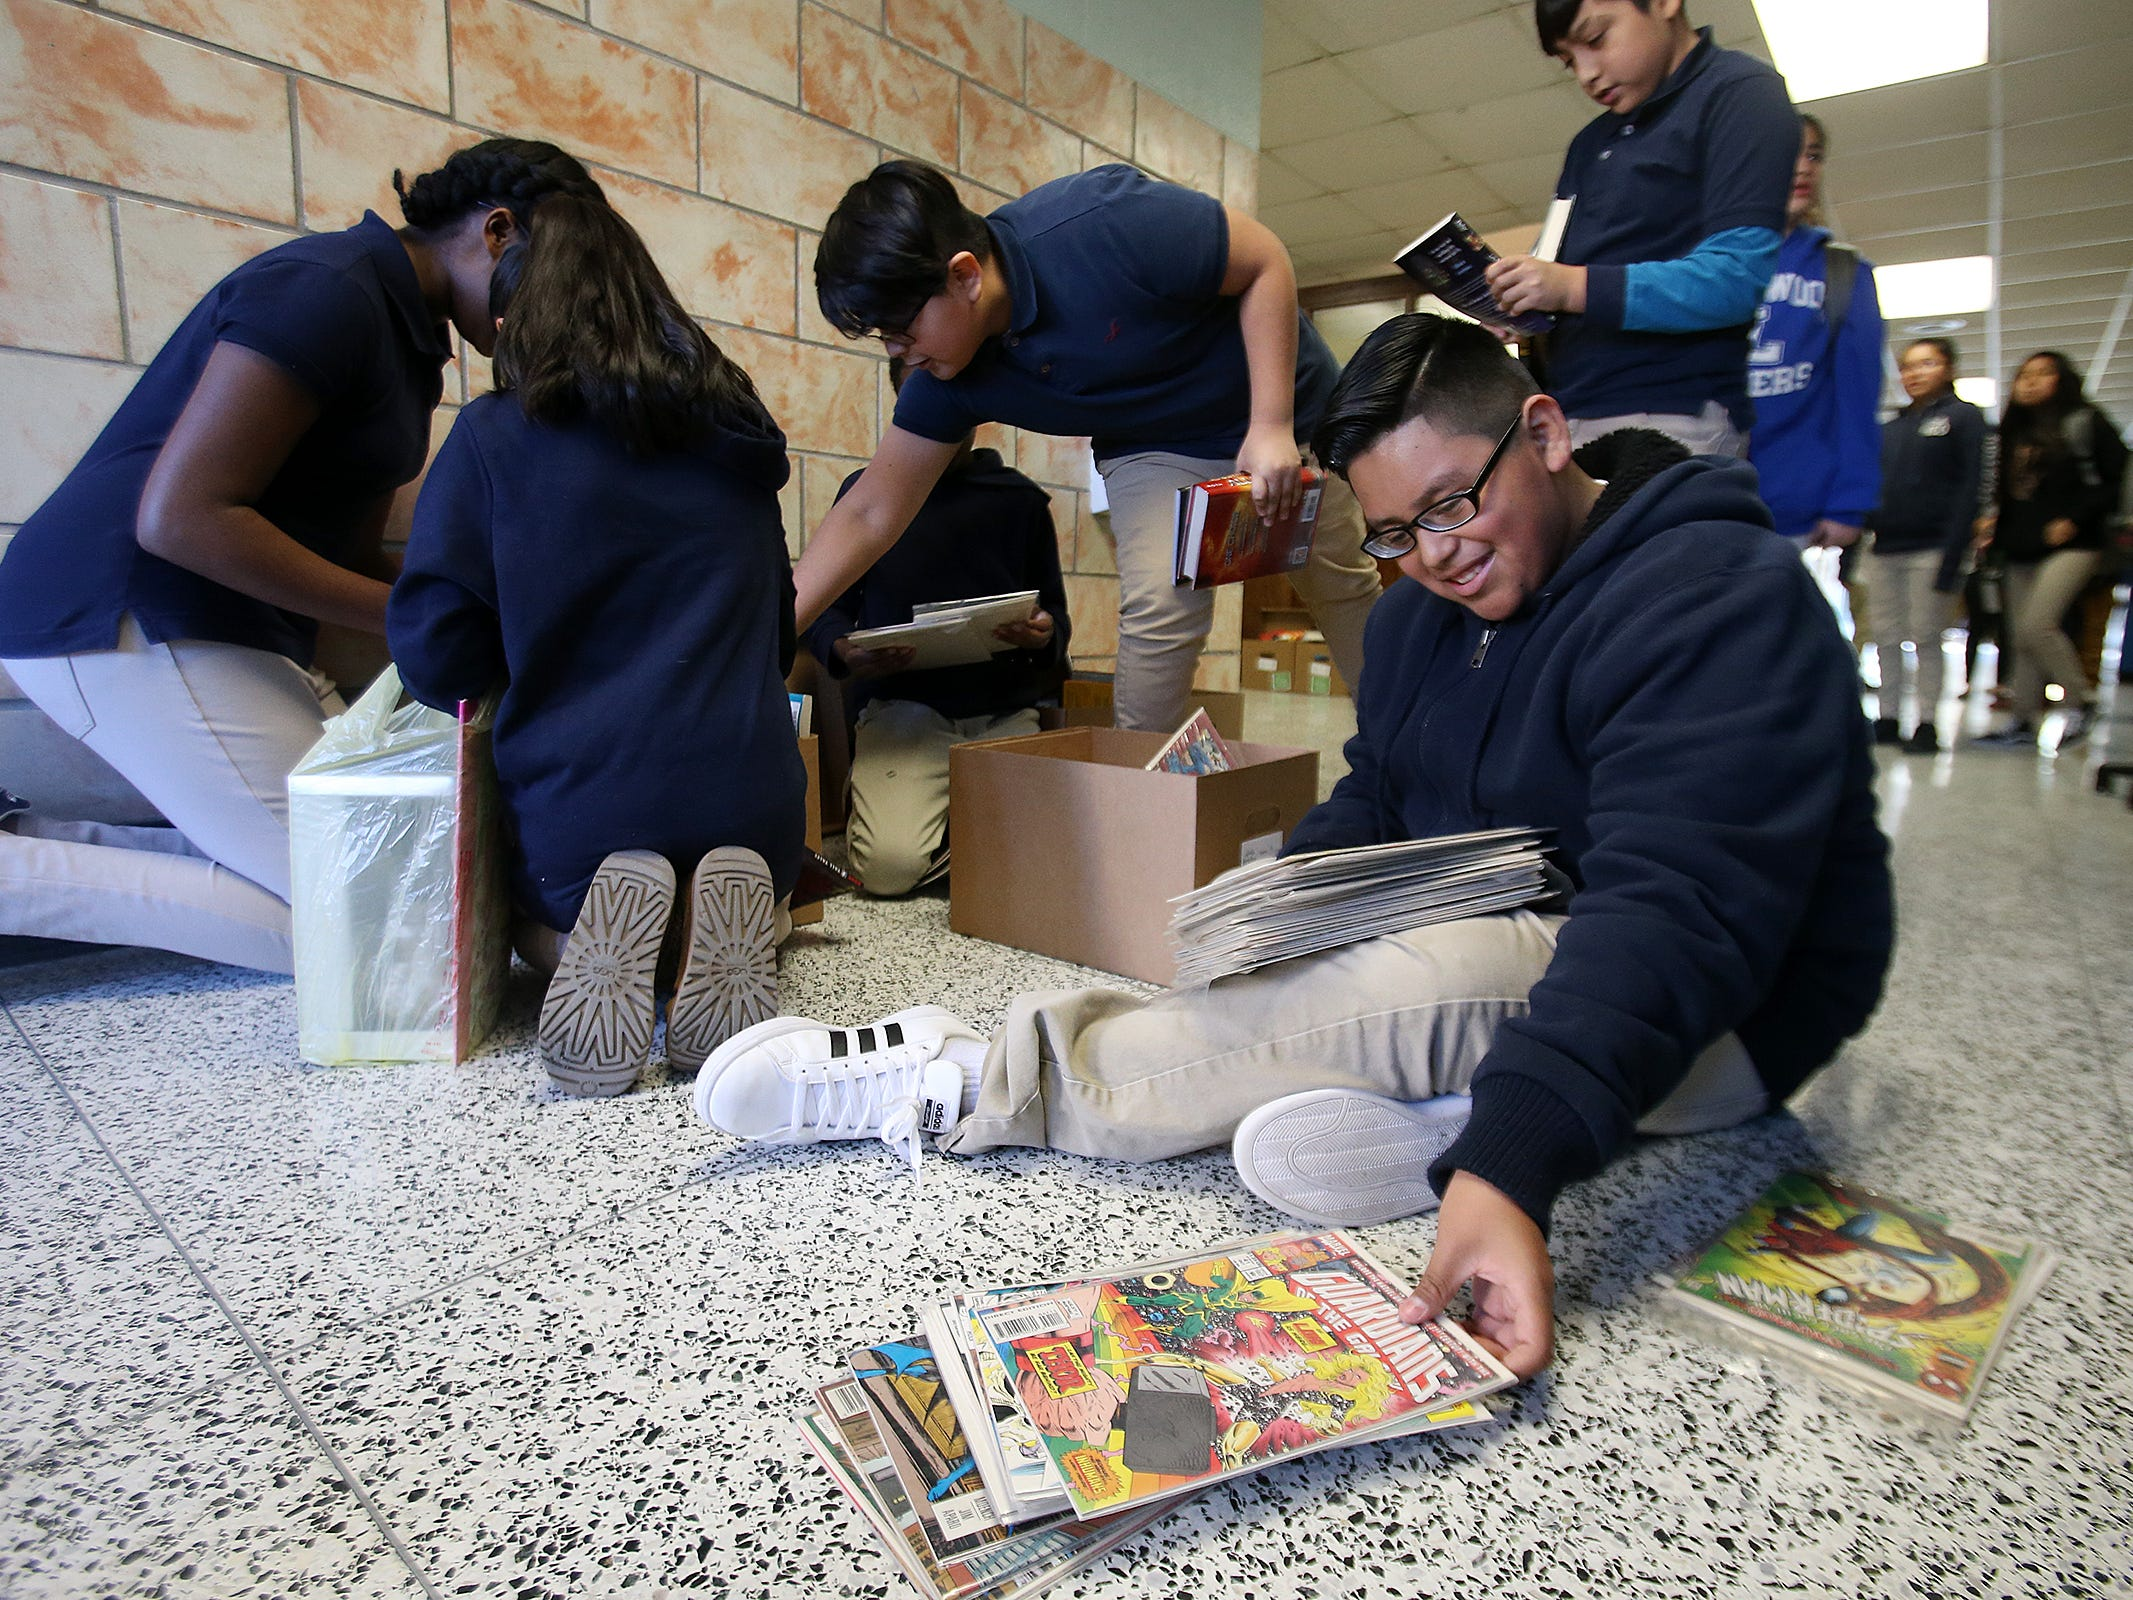 Fernando Morales, 12, of Lakewood chooses a comic book during a Bridge of Books Foundation event for sixth graders at Lakewood Middle School in Lakewood, NJ Tuesday, December 18, 2018. The Bridge of Books Foundation, which donates recreational reading books to underprivileged kids across the state, donated its one millionth book during this event.